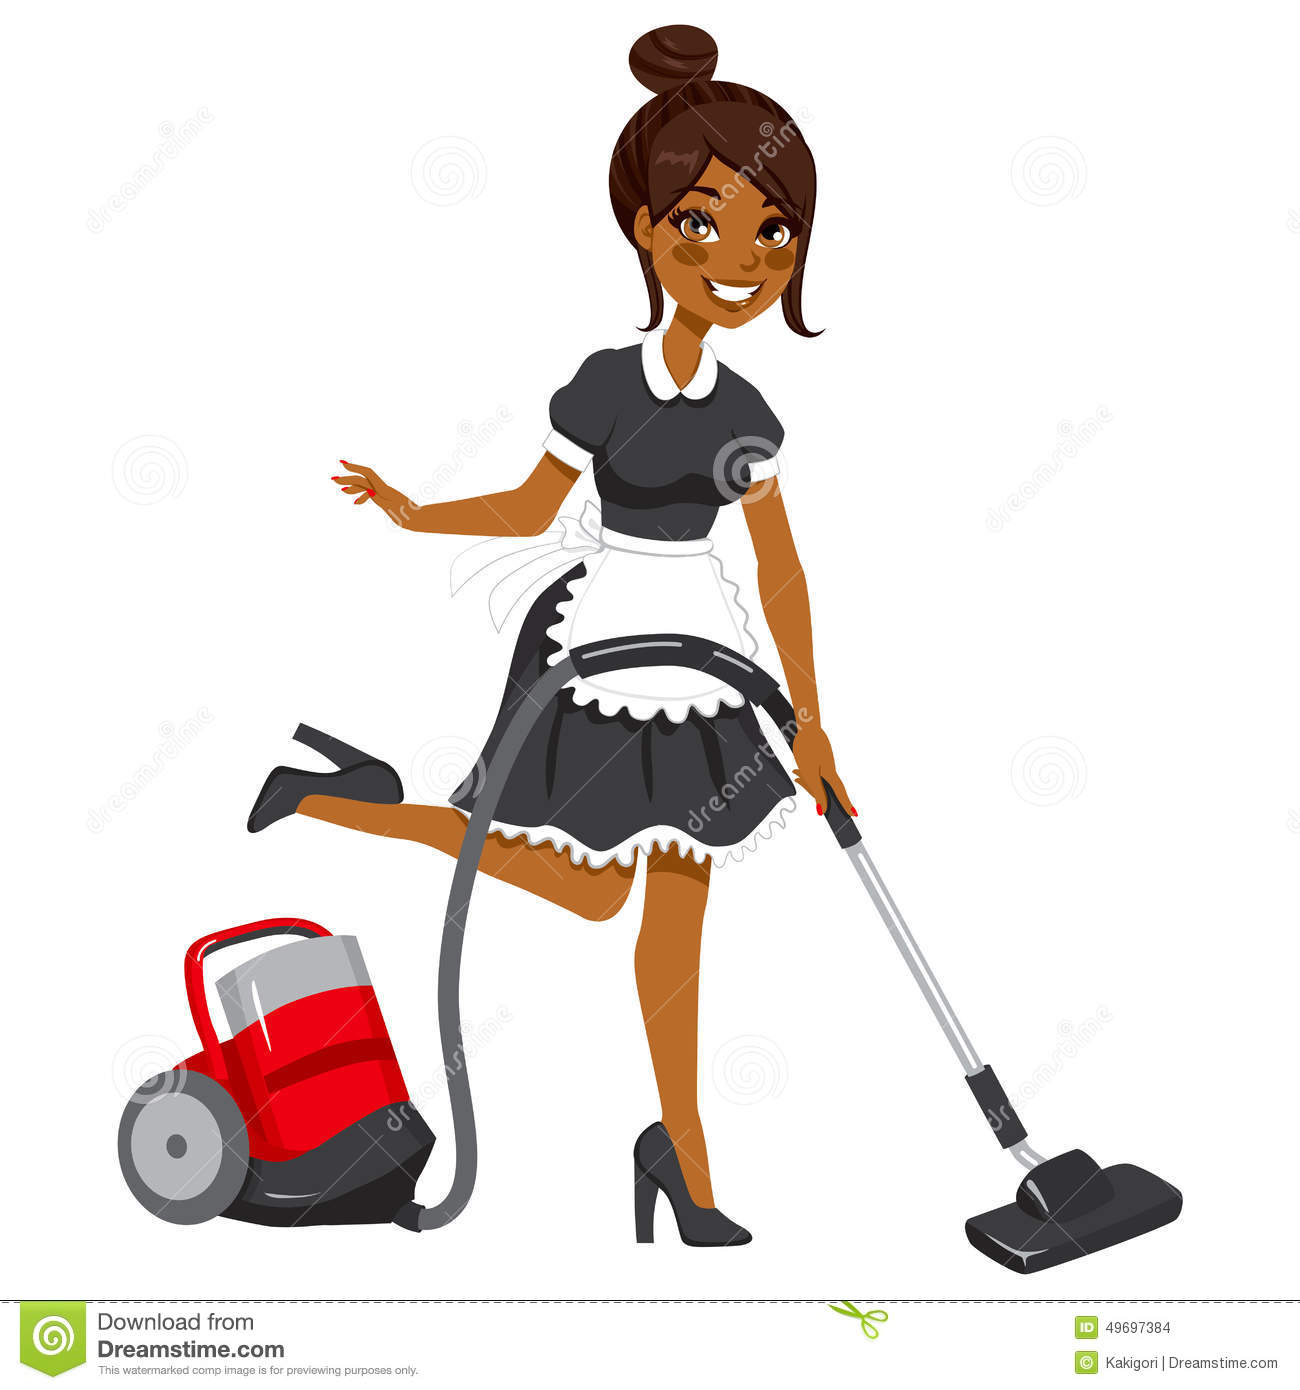 Vacuum cleaner clipart vacuum cleaner clip art - African American Beautiful Cleaner Cleaning Dress Maid Using Vacuum